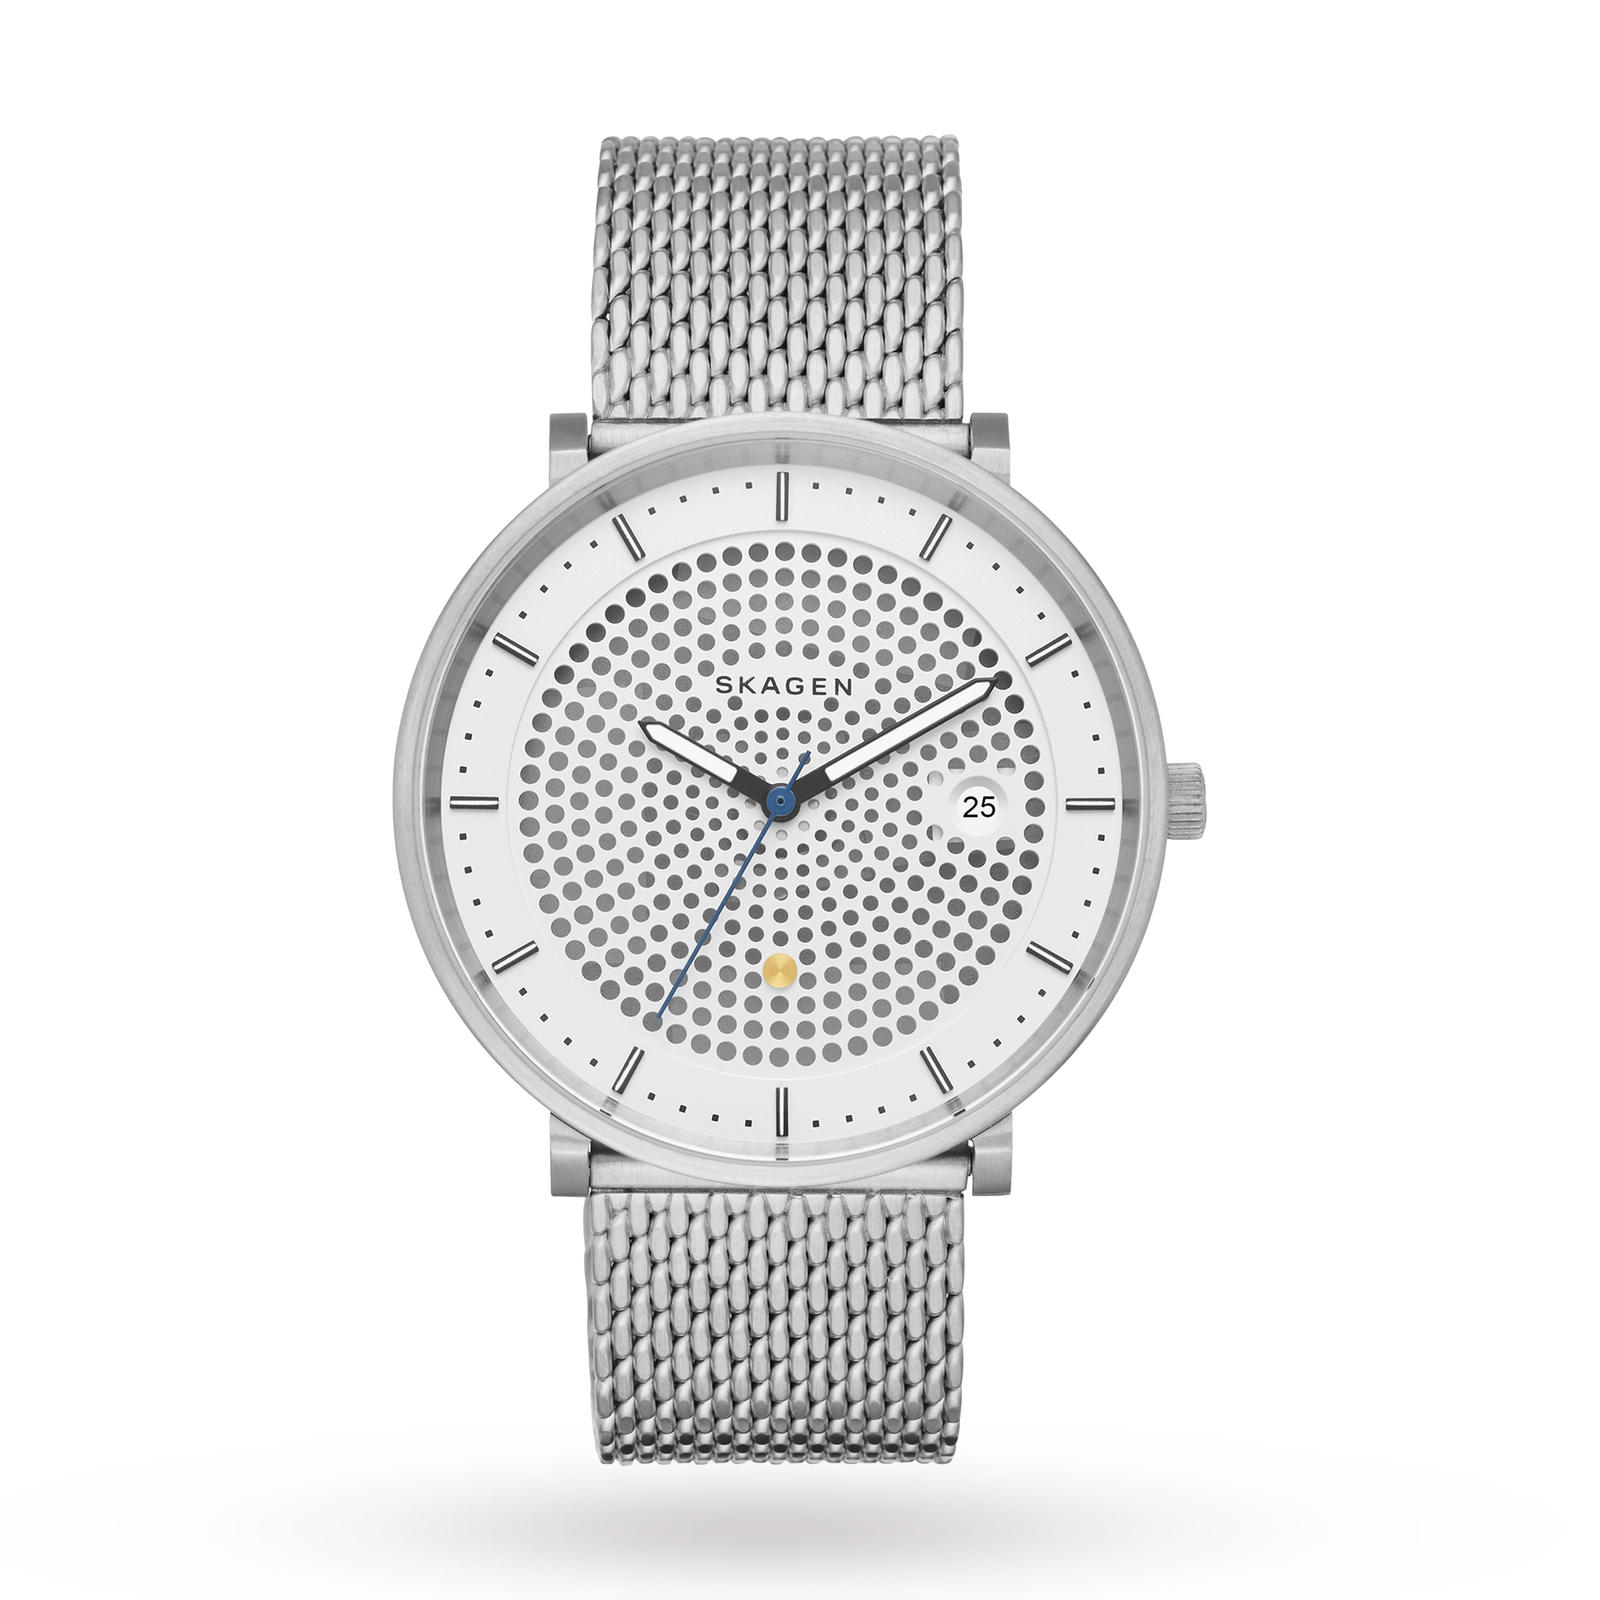 Skagen Men's Hald Solar Watch